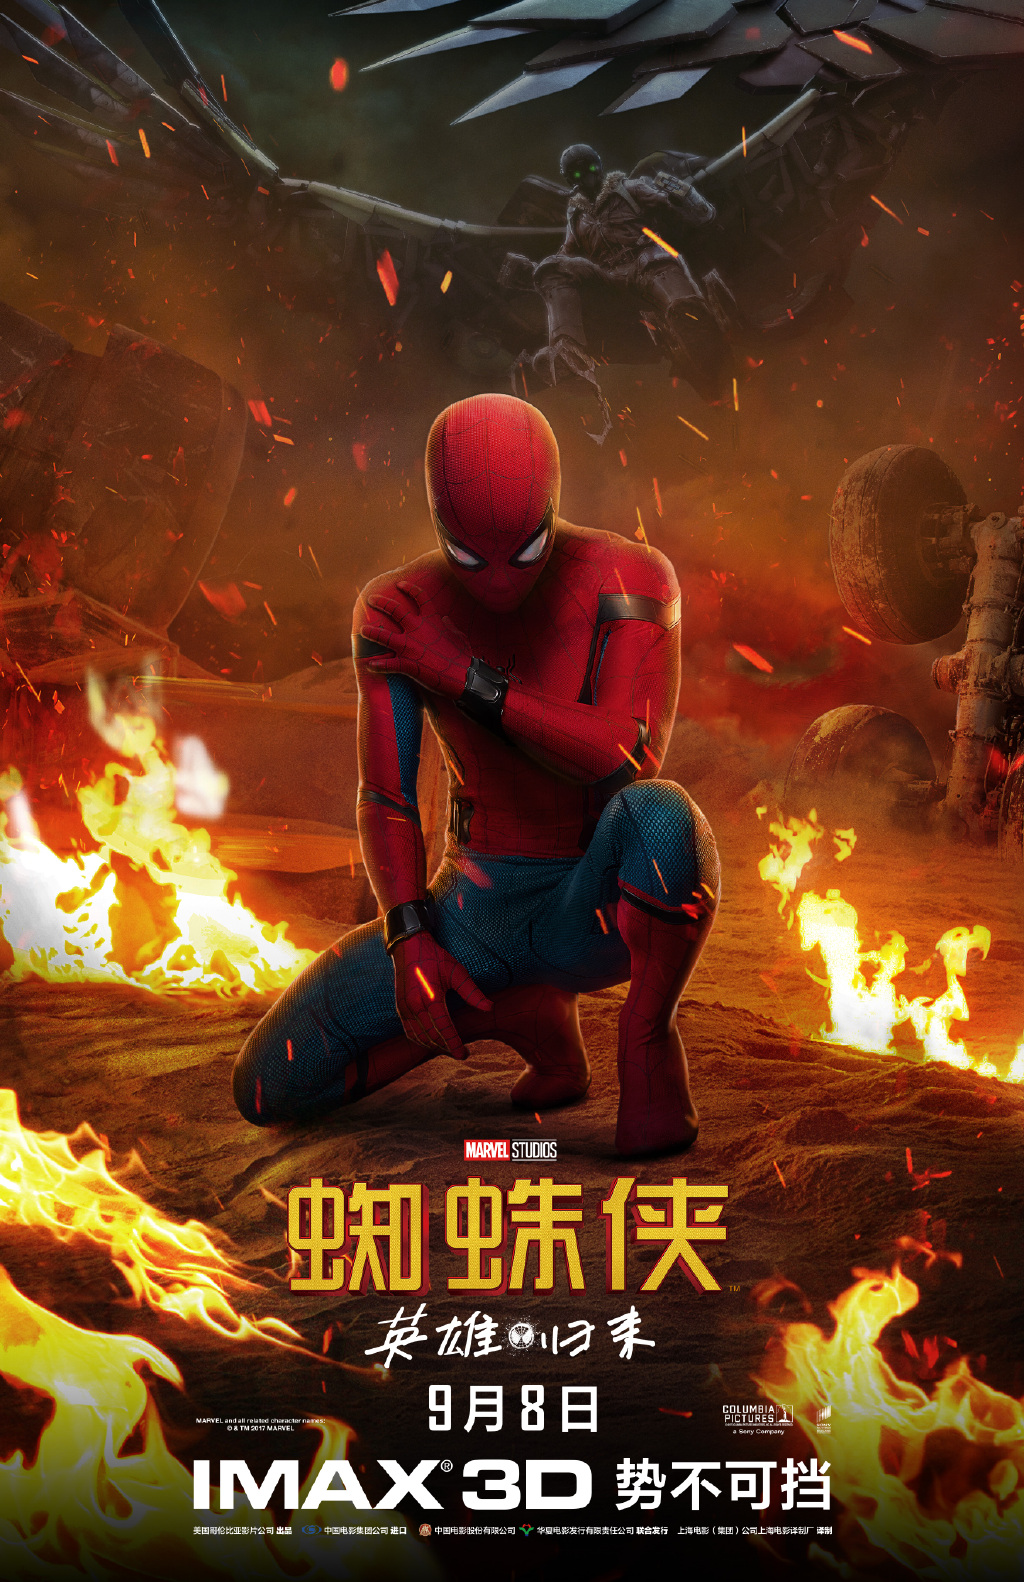 3d Wallpaper Made In China New Official Spider Man Homecoming Posters In China